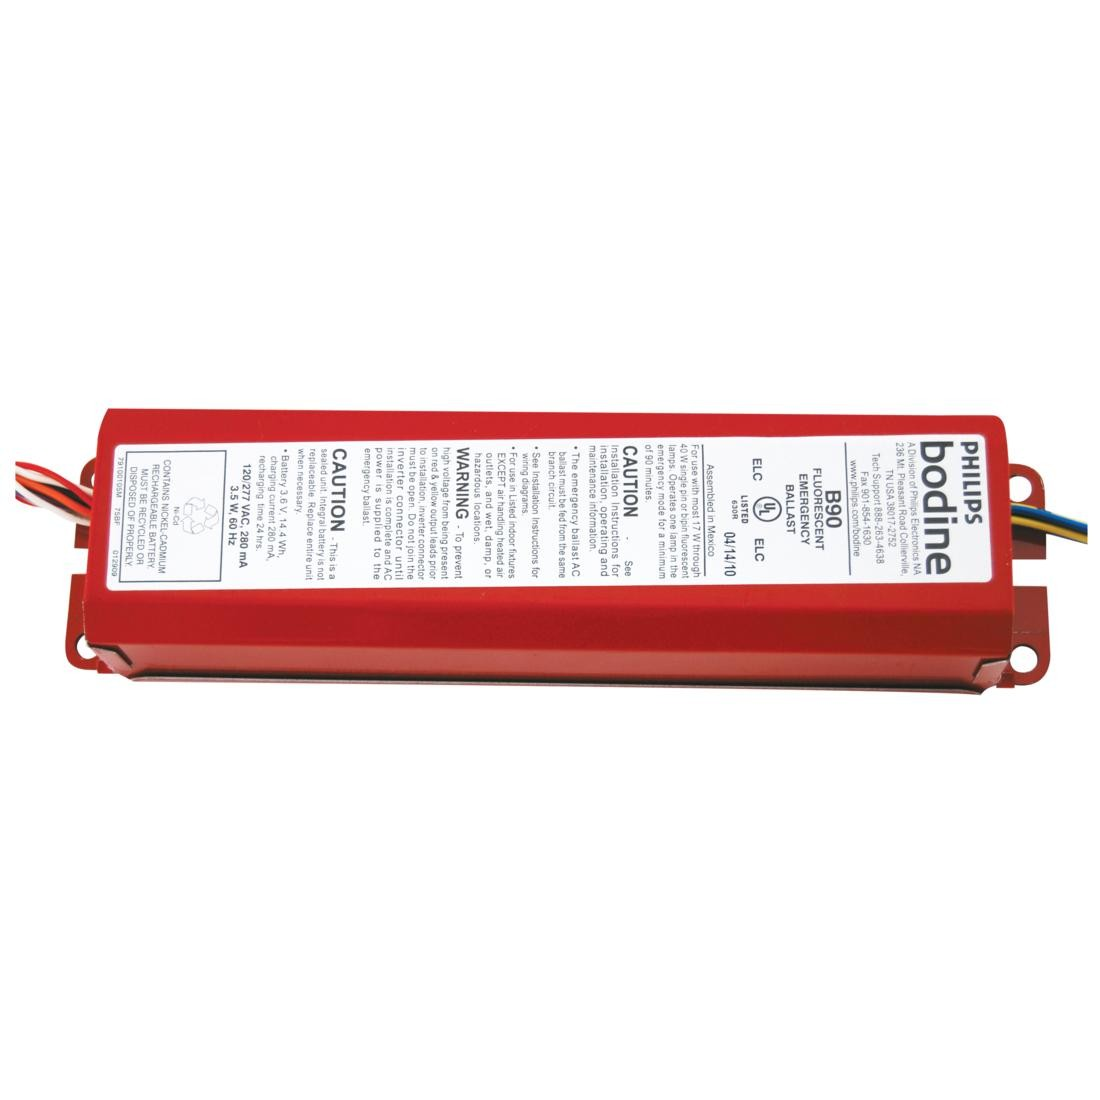 WPCFL_BAL_EMERG_B90_BODINE fluorescent emergency back up batteries ballasts bodine ballast wiring diagram at edmiracle.co